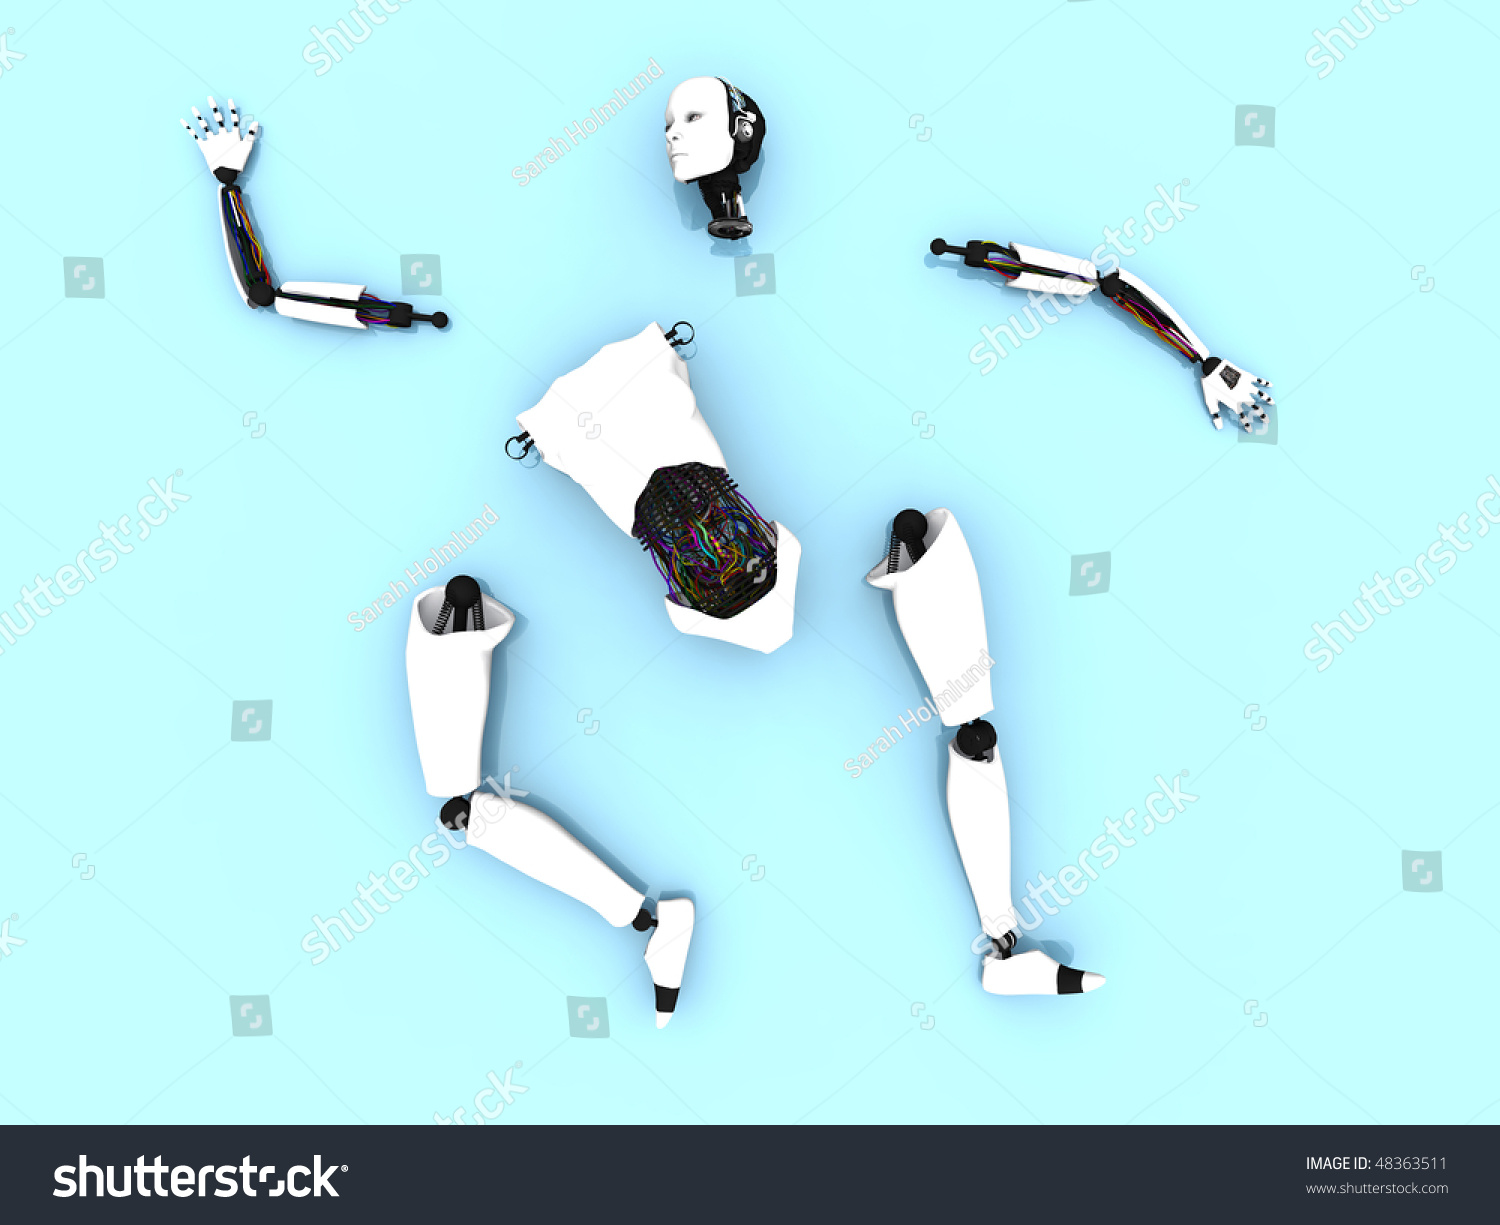 Body Parts Of A Female Robot Lying Spread Out On The Floor